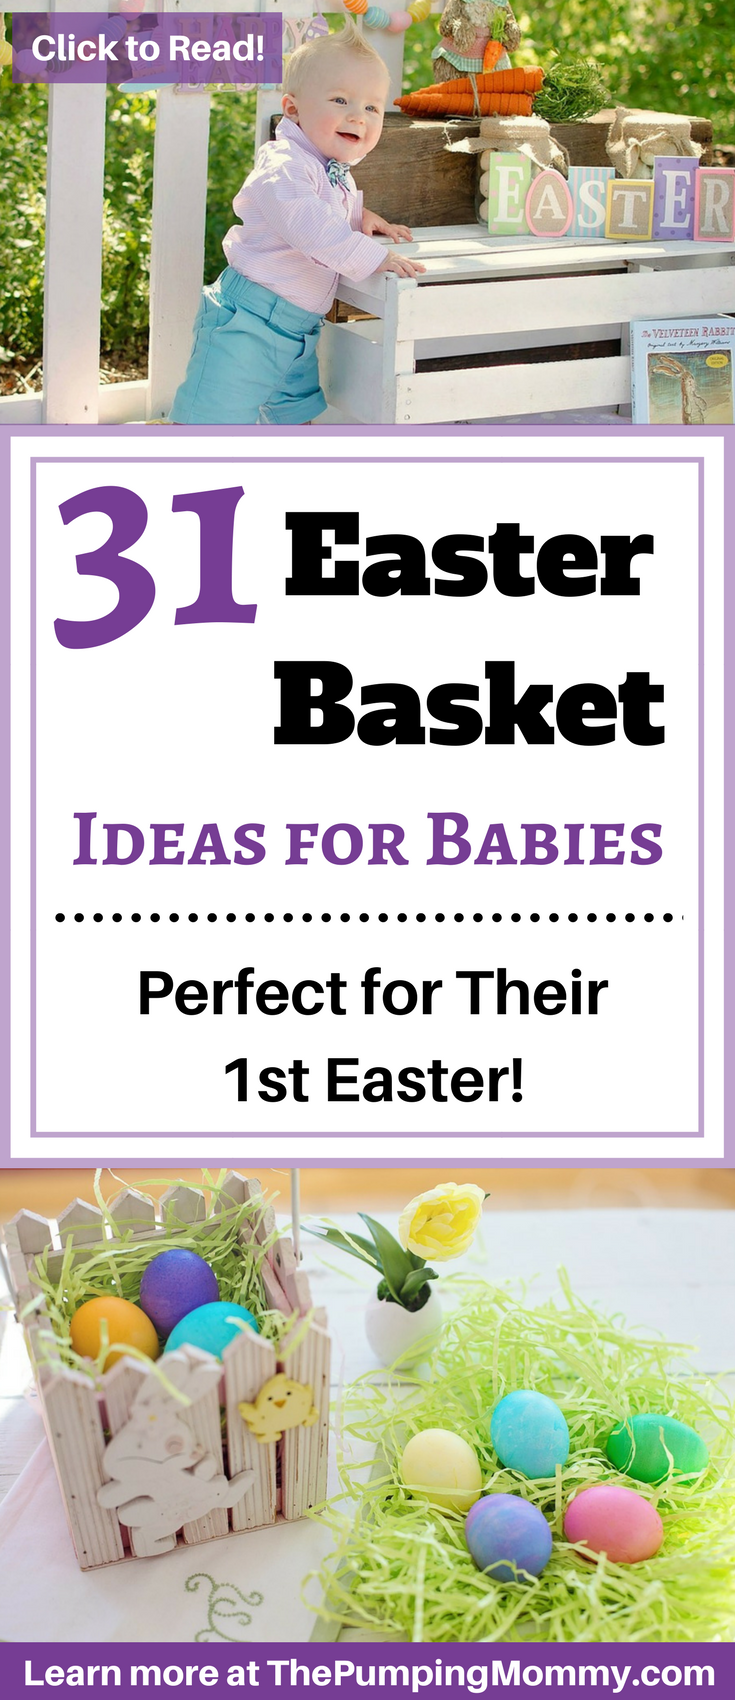 31 easter basket ideas for babies the pumping mommy 31 easter basket ideas for babies negle